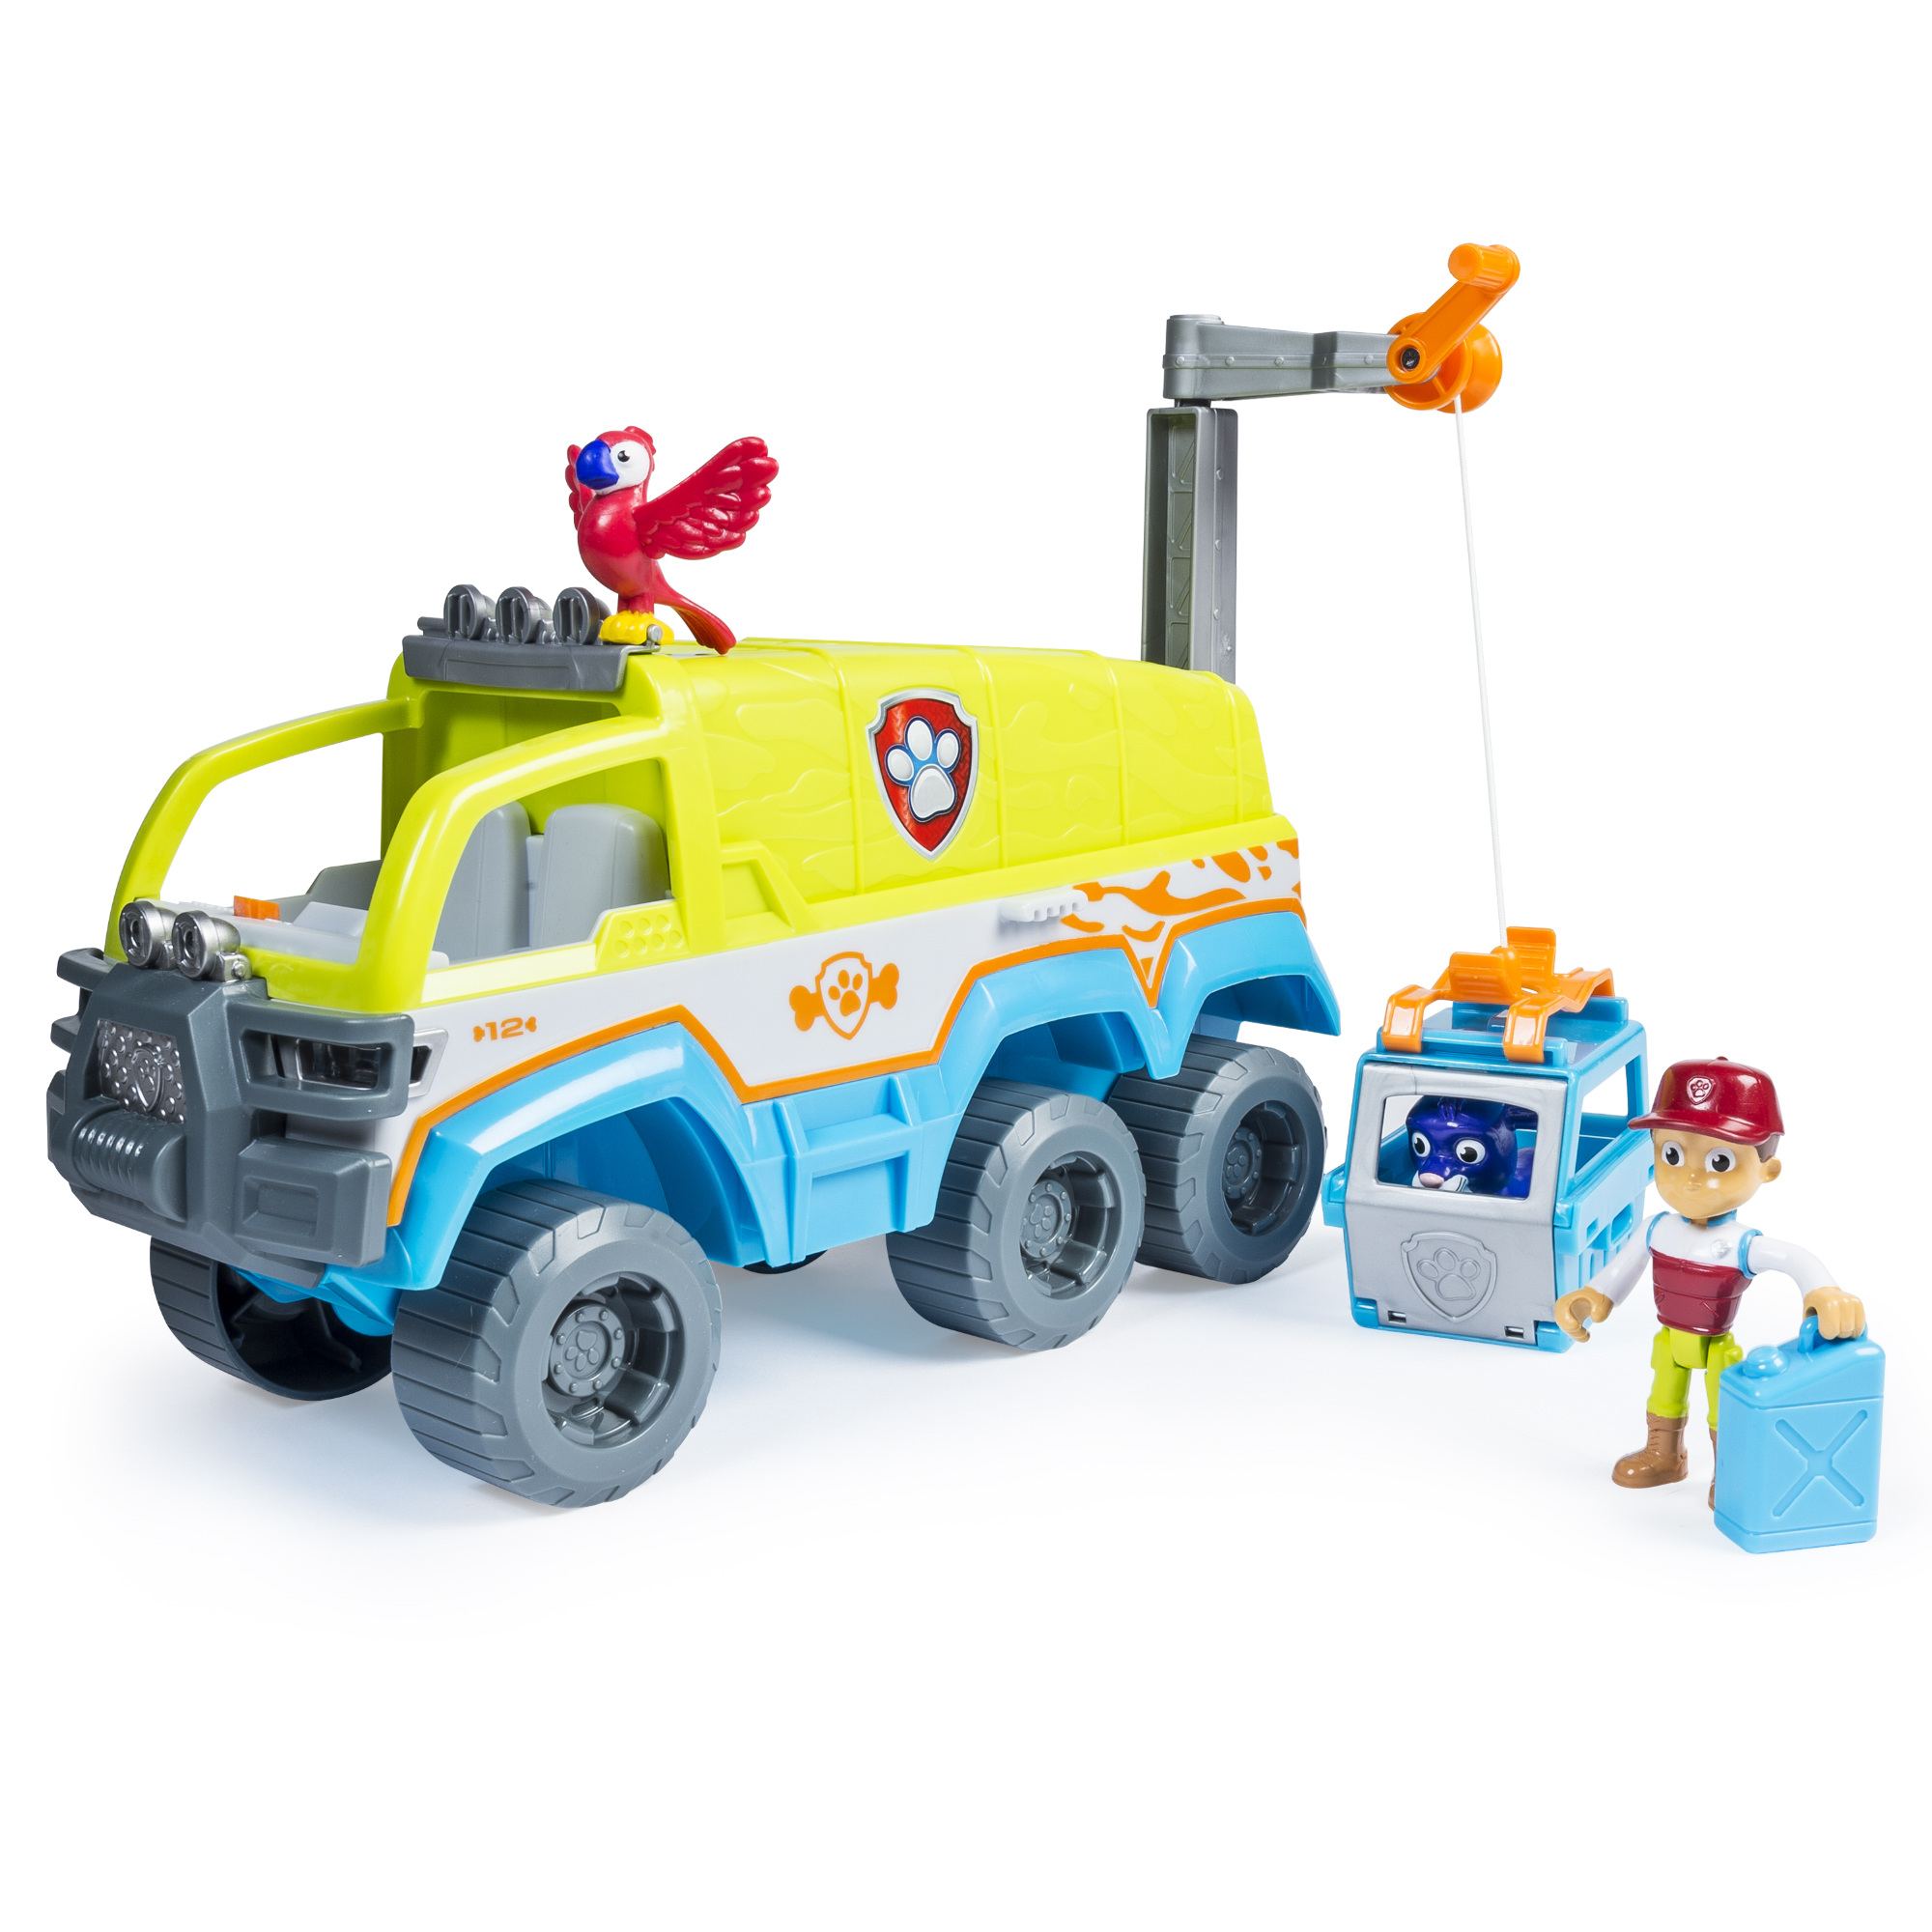 Paw Patrol Paw Patrol Машина Paw Patrol «Вездеход спасателей» 20cm canine patrol dog toys russian anime doll action figures car patrol puppy toy patrulla canina juguetes gift for child m134